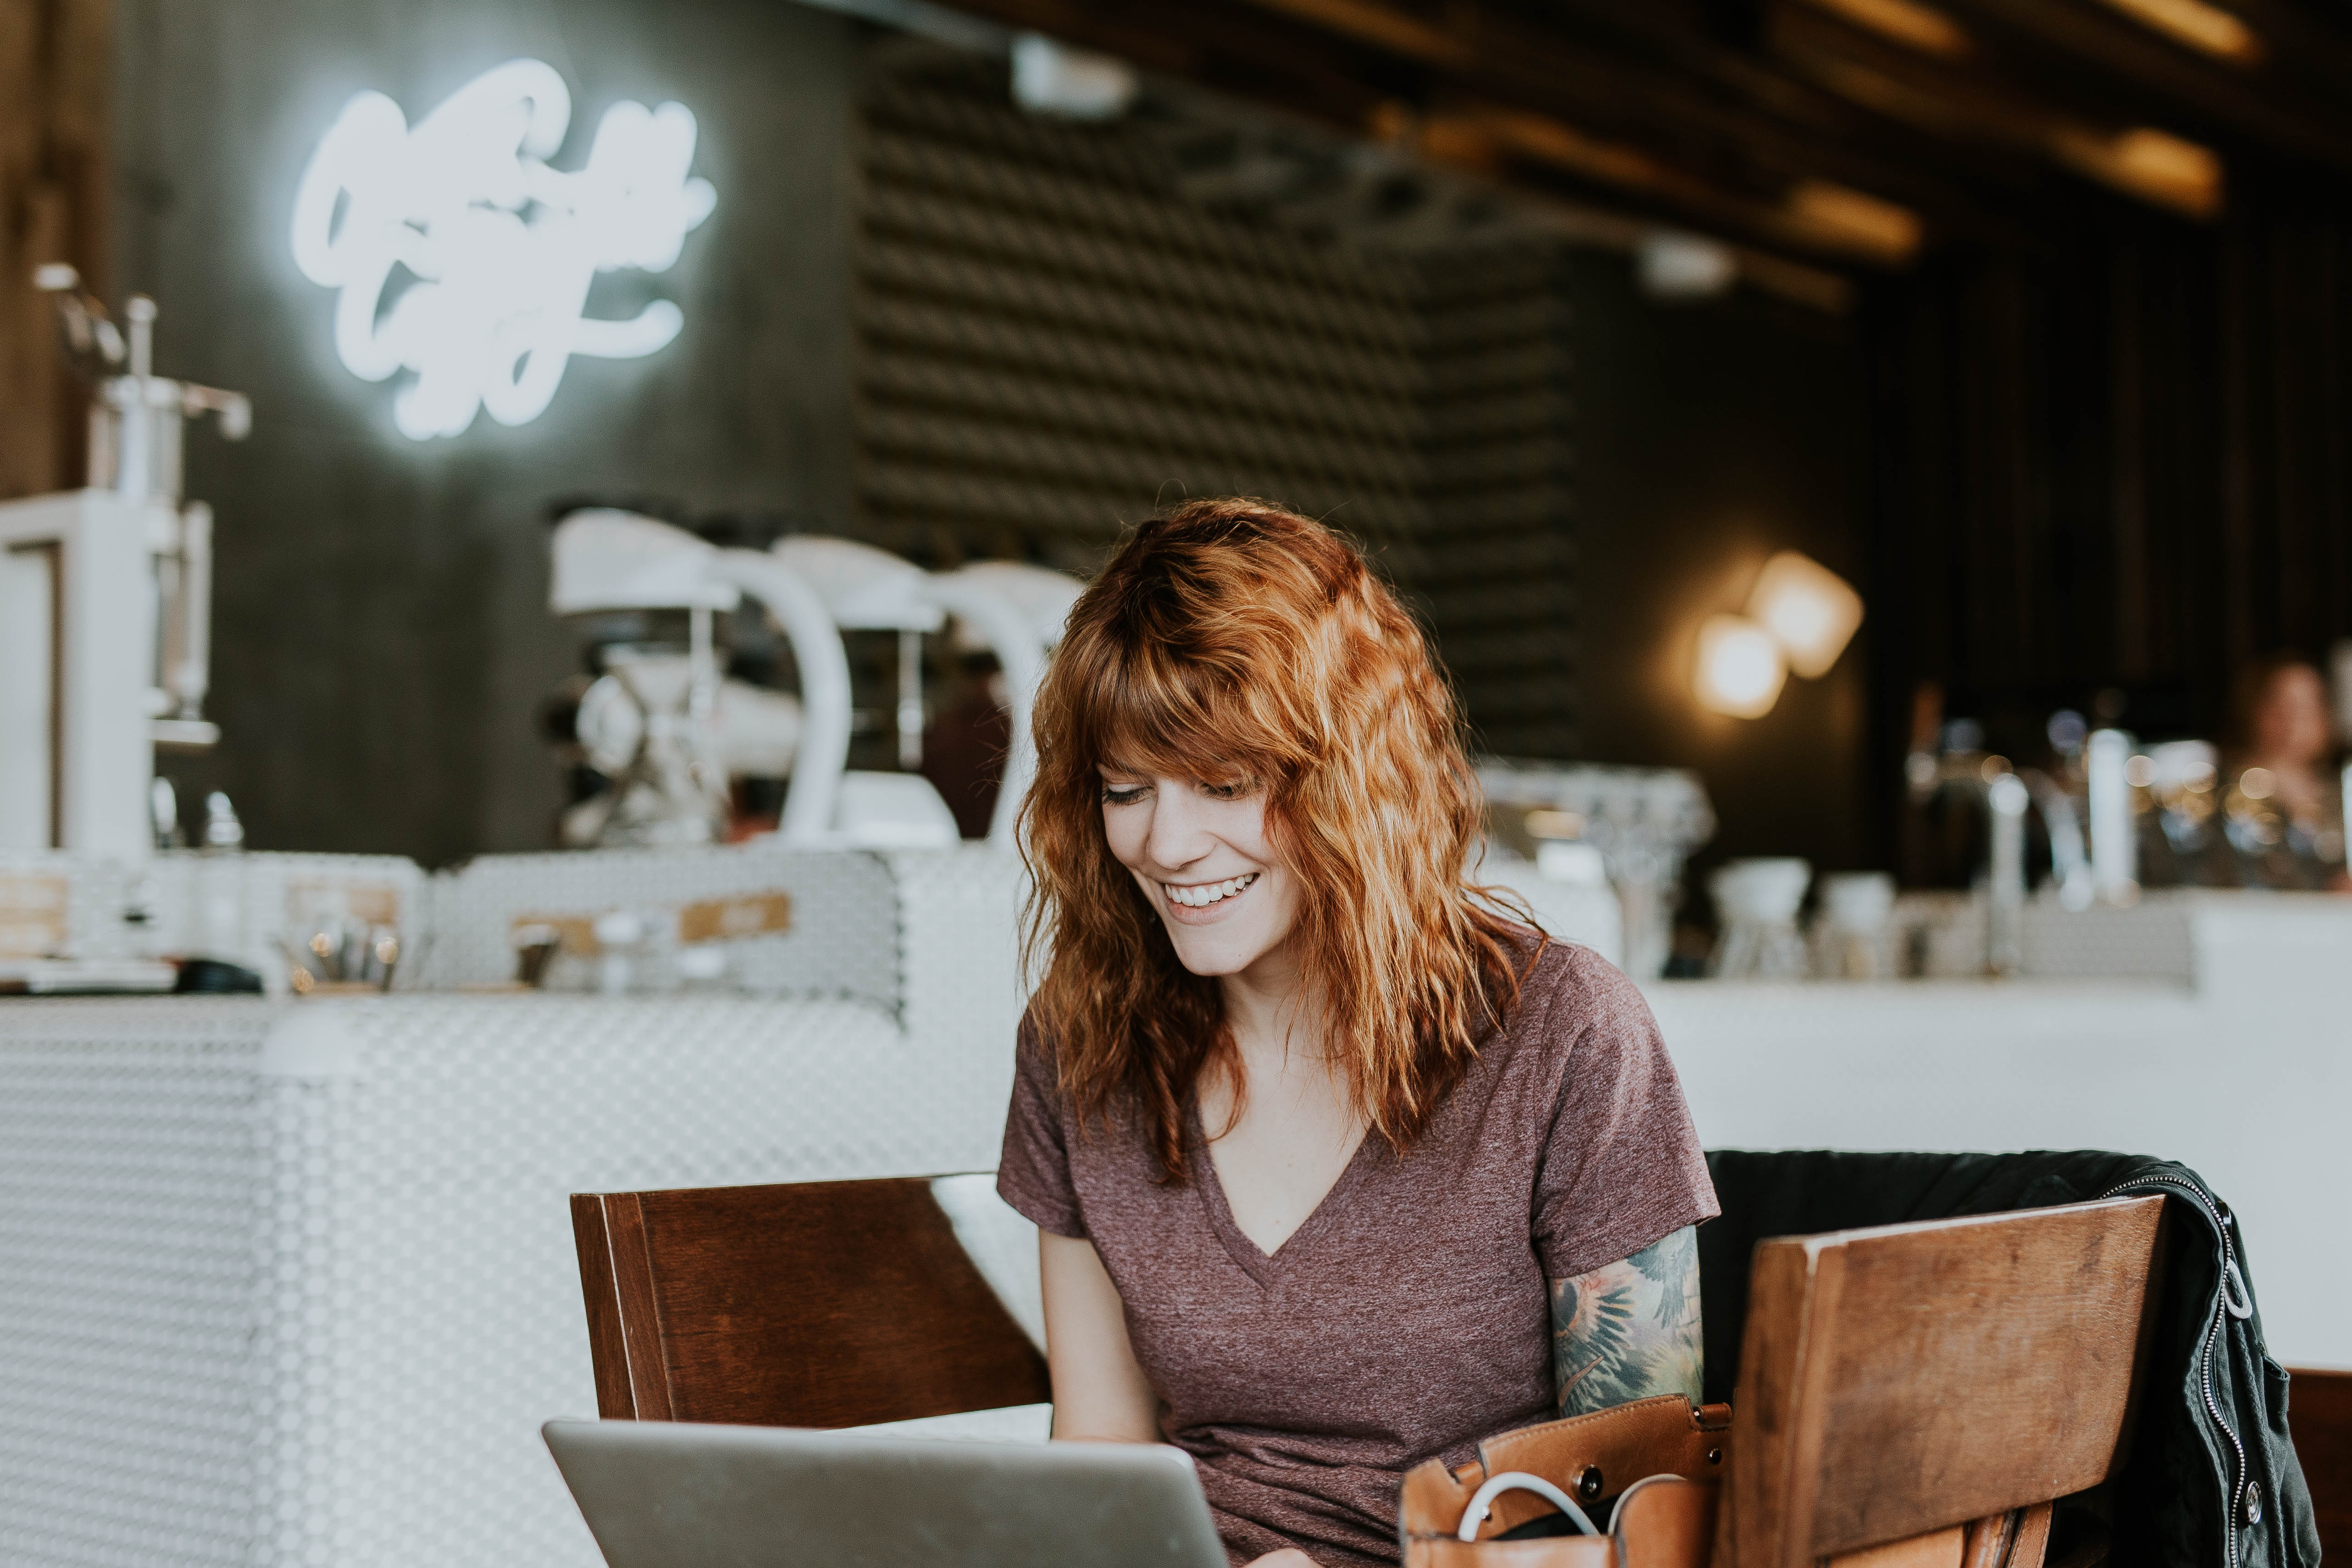 Authenticity of online dating